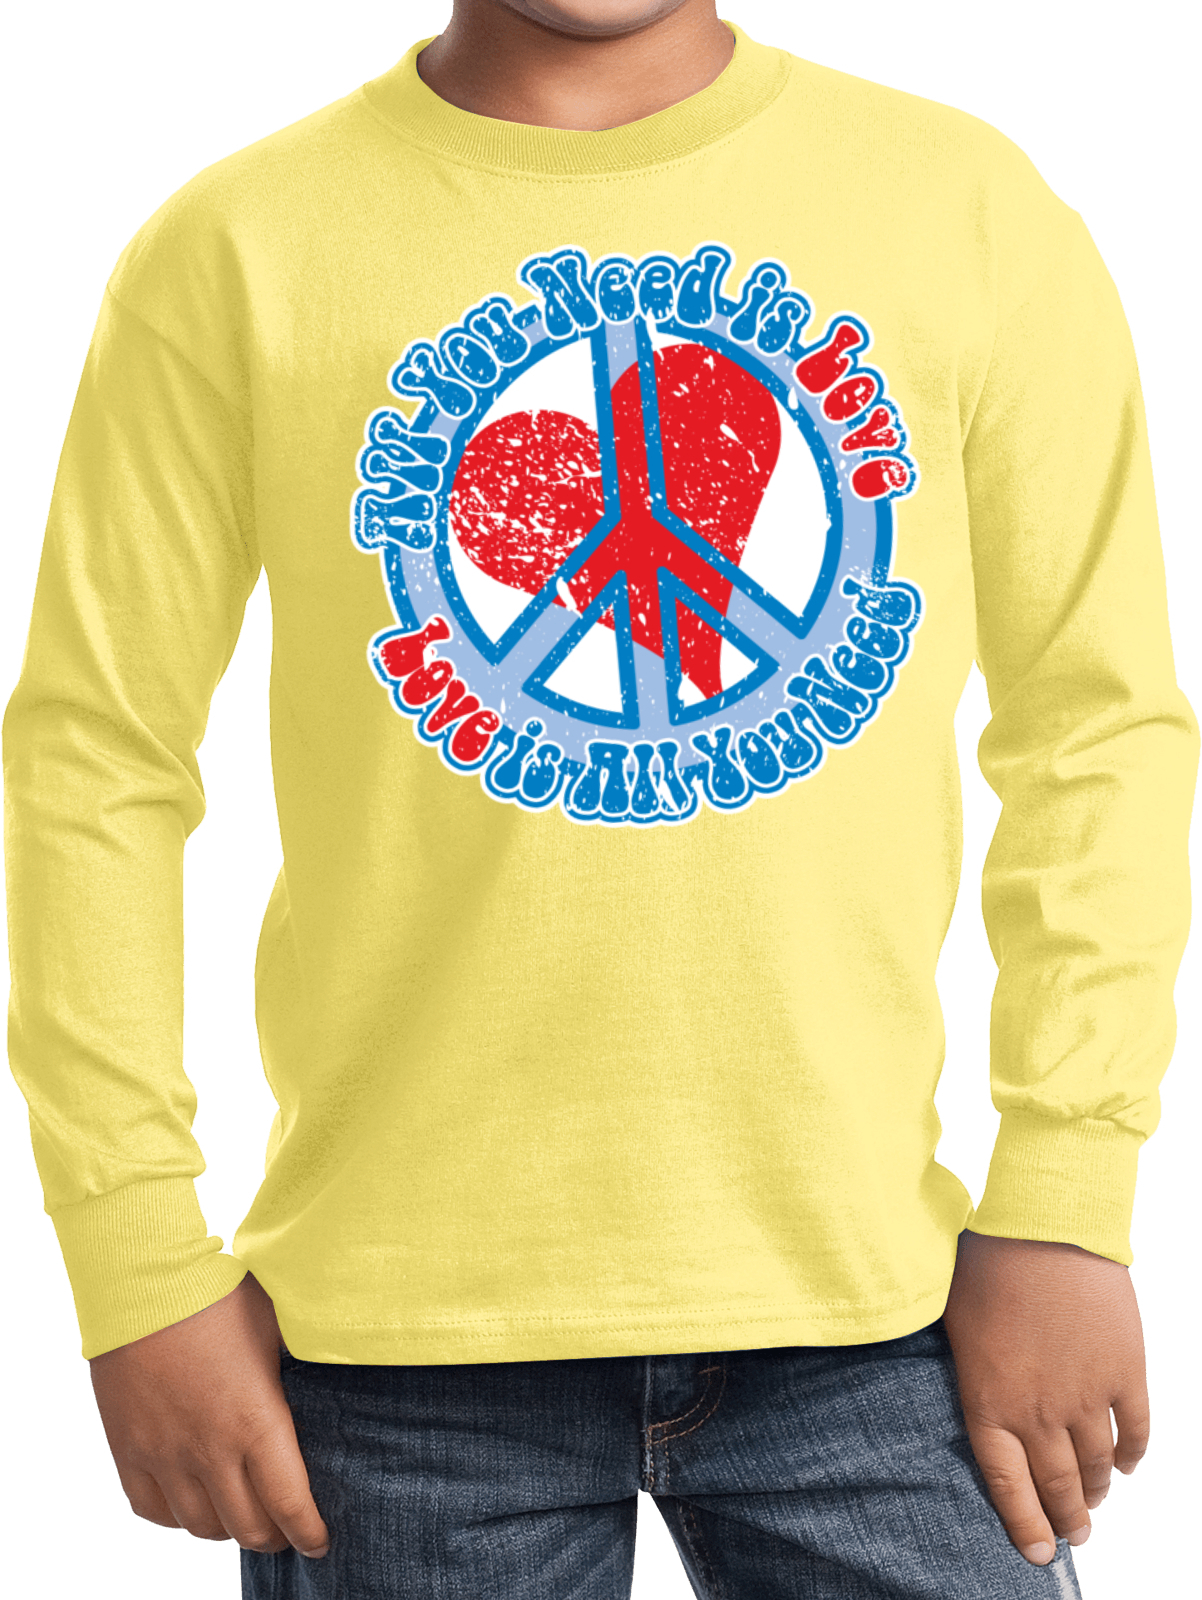 Kids peace shirt all you need is love long sleeve tee t for I love you t shirts